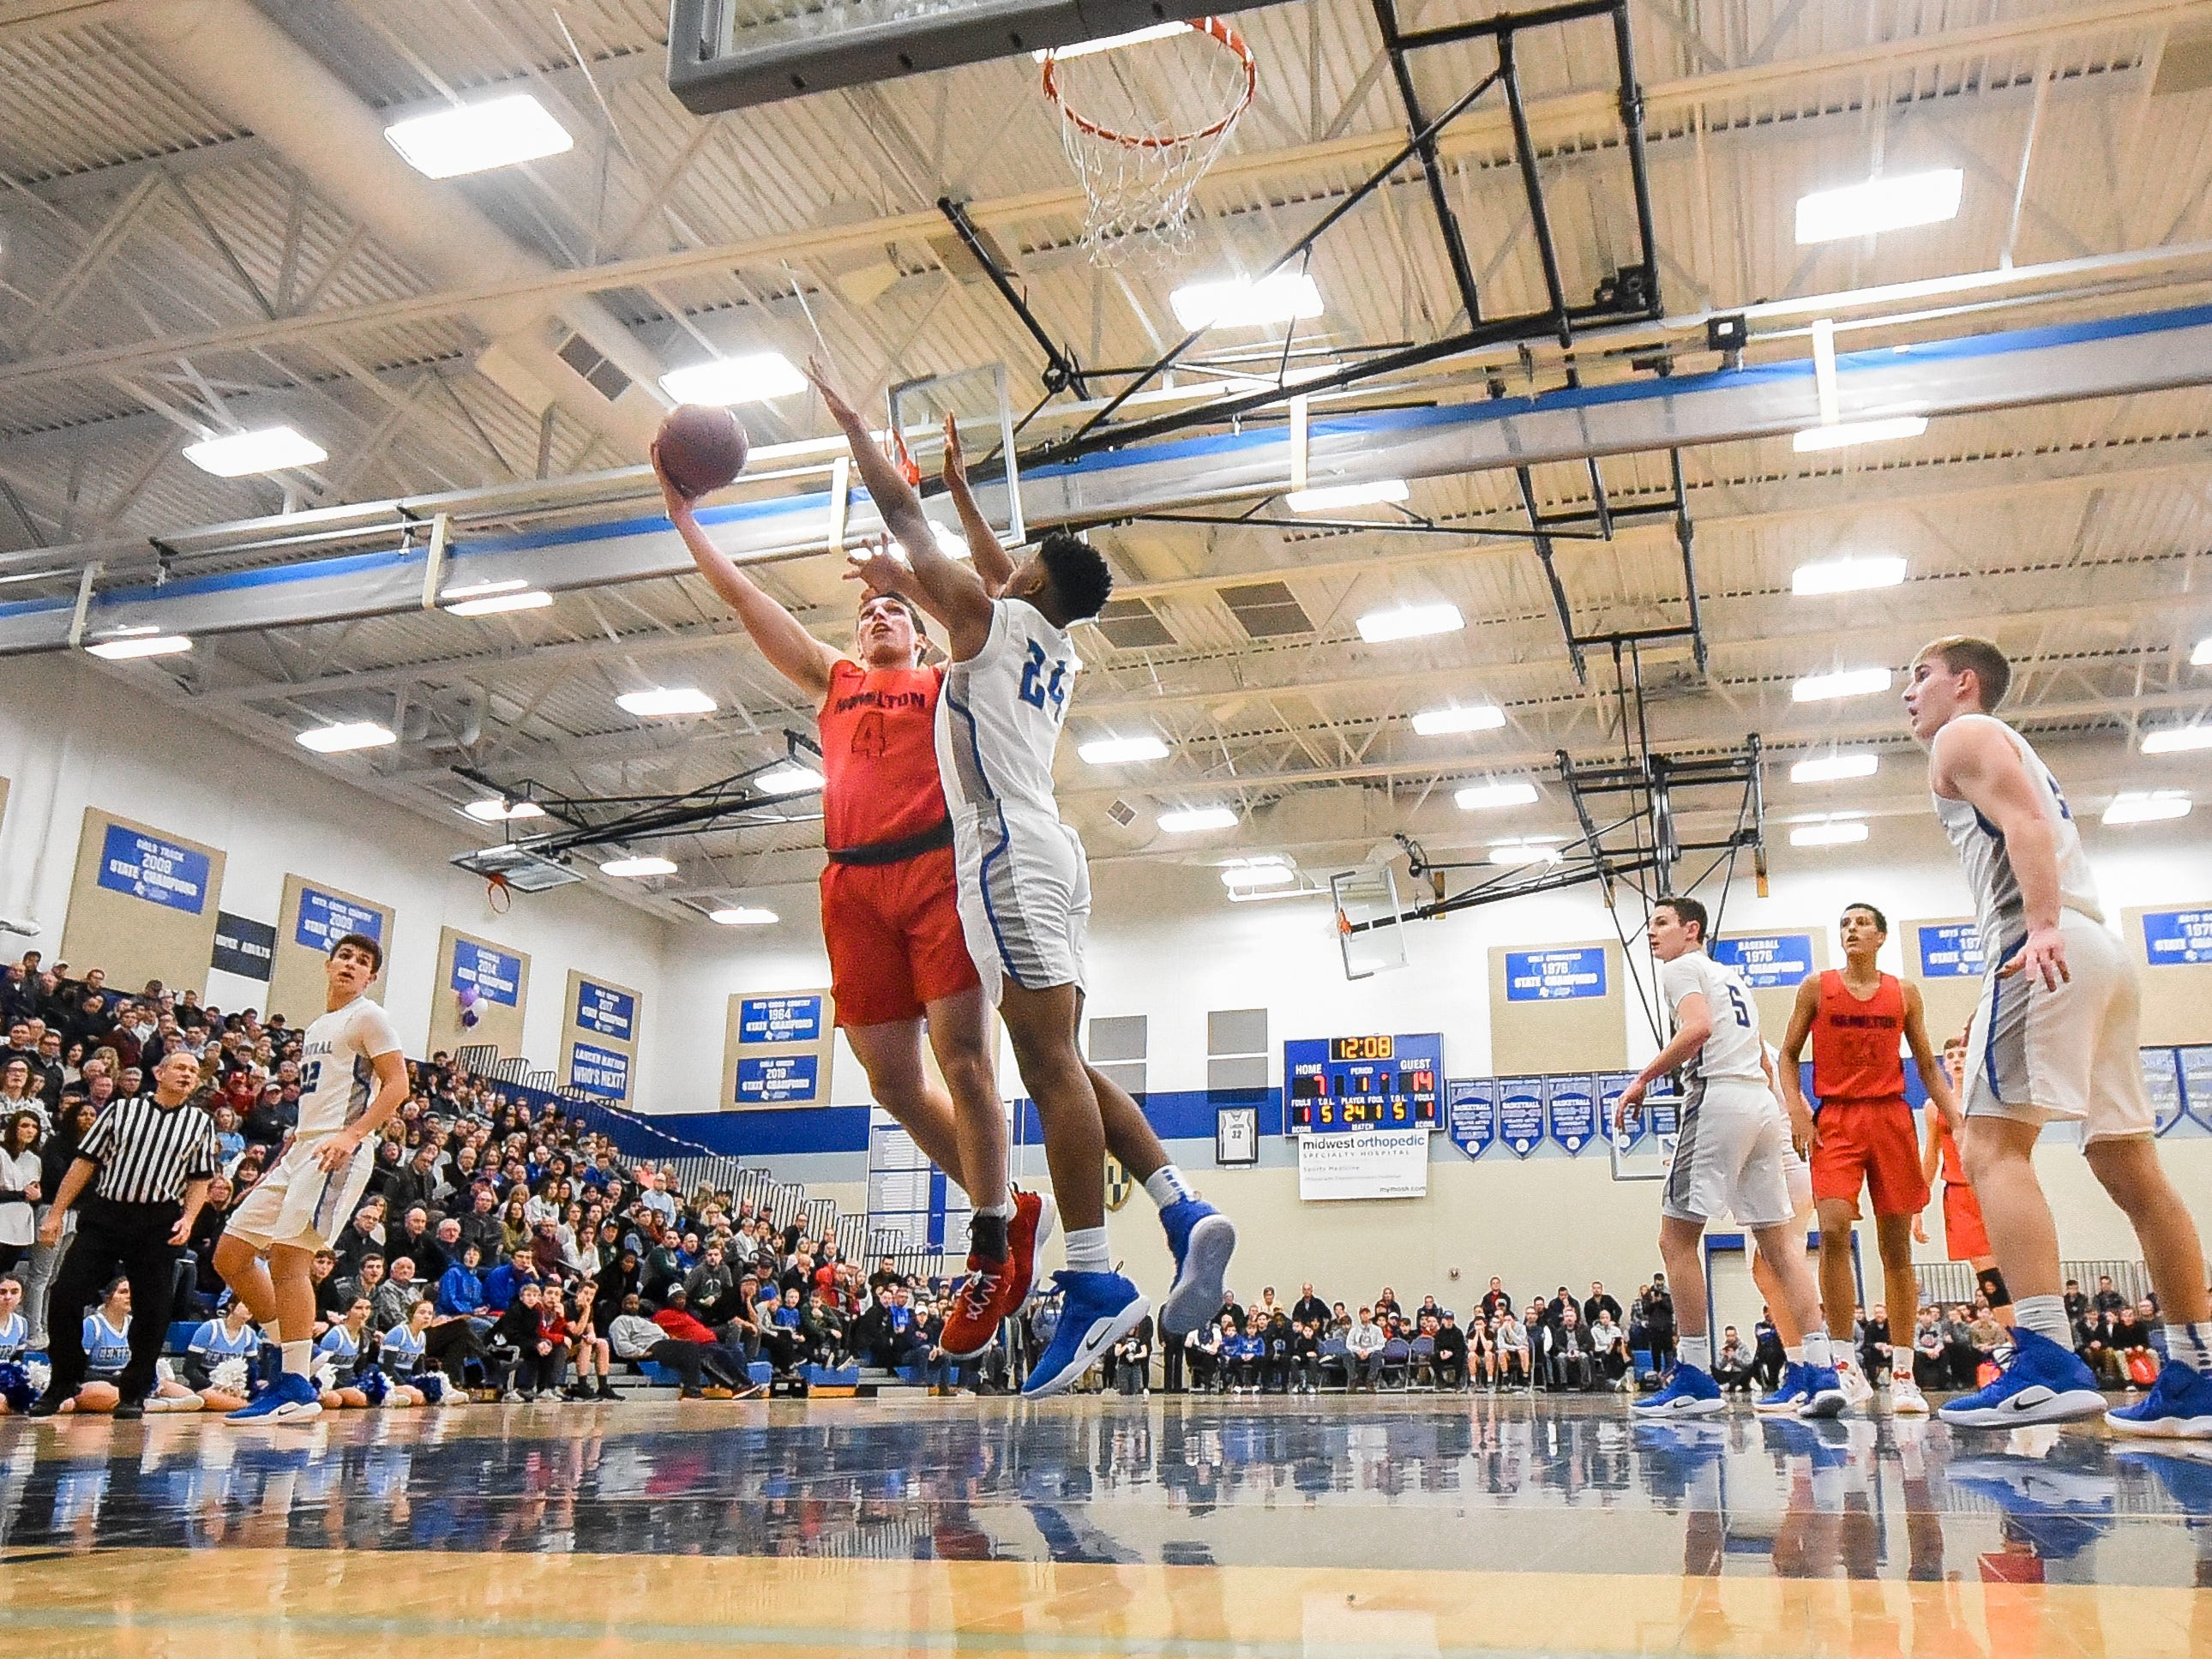 Sussex Hamilton forward/center Lucas finnessy goes to the basket against Brookfield Central forward David Joplin in a boys basketball game Thursday, January 24, 2019, at Brookfield Central High School.